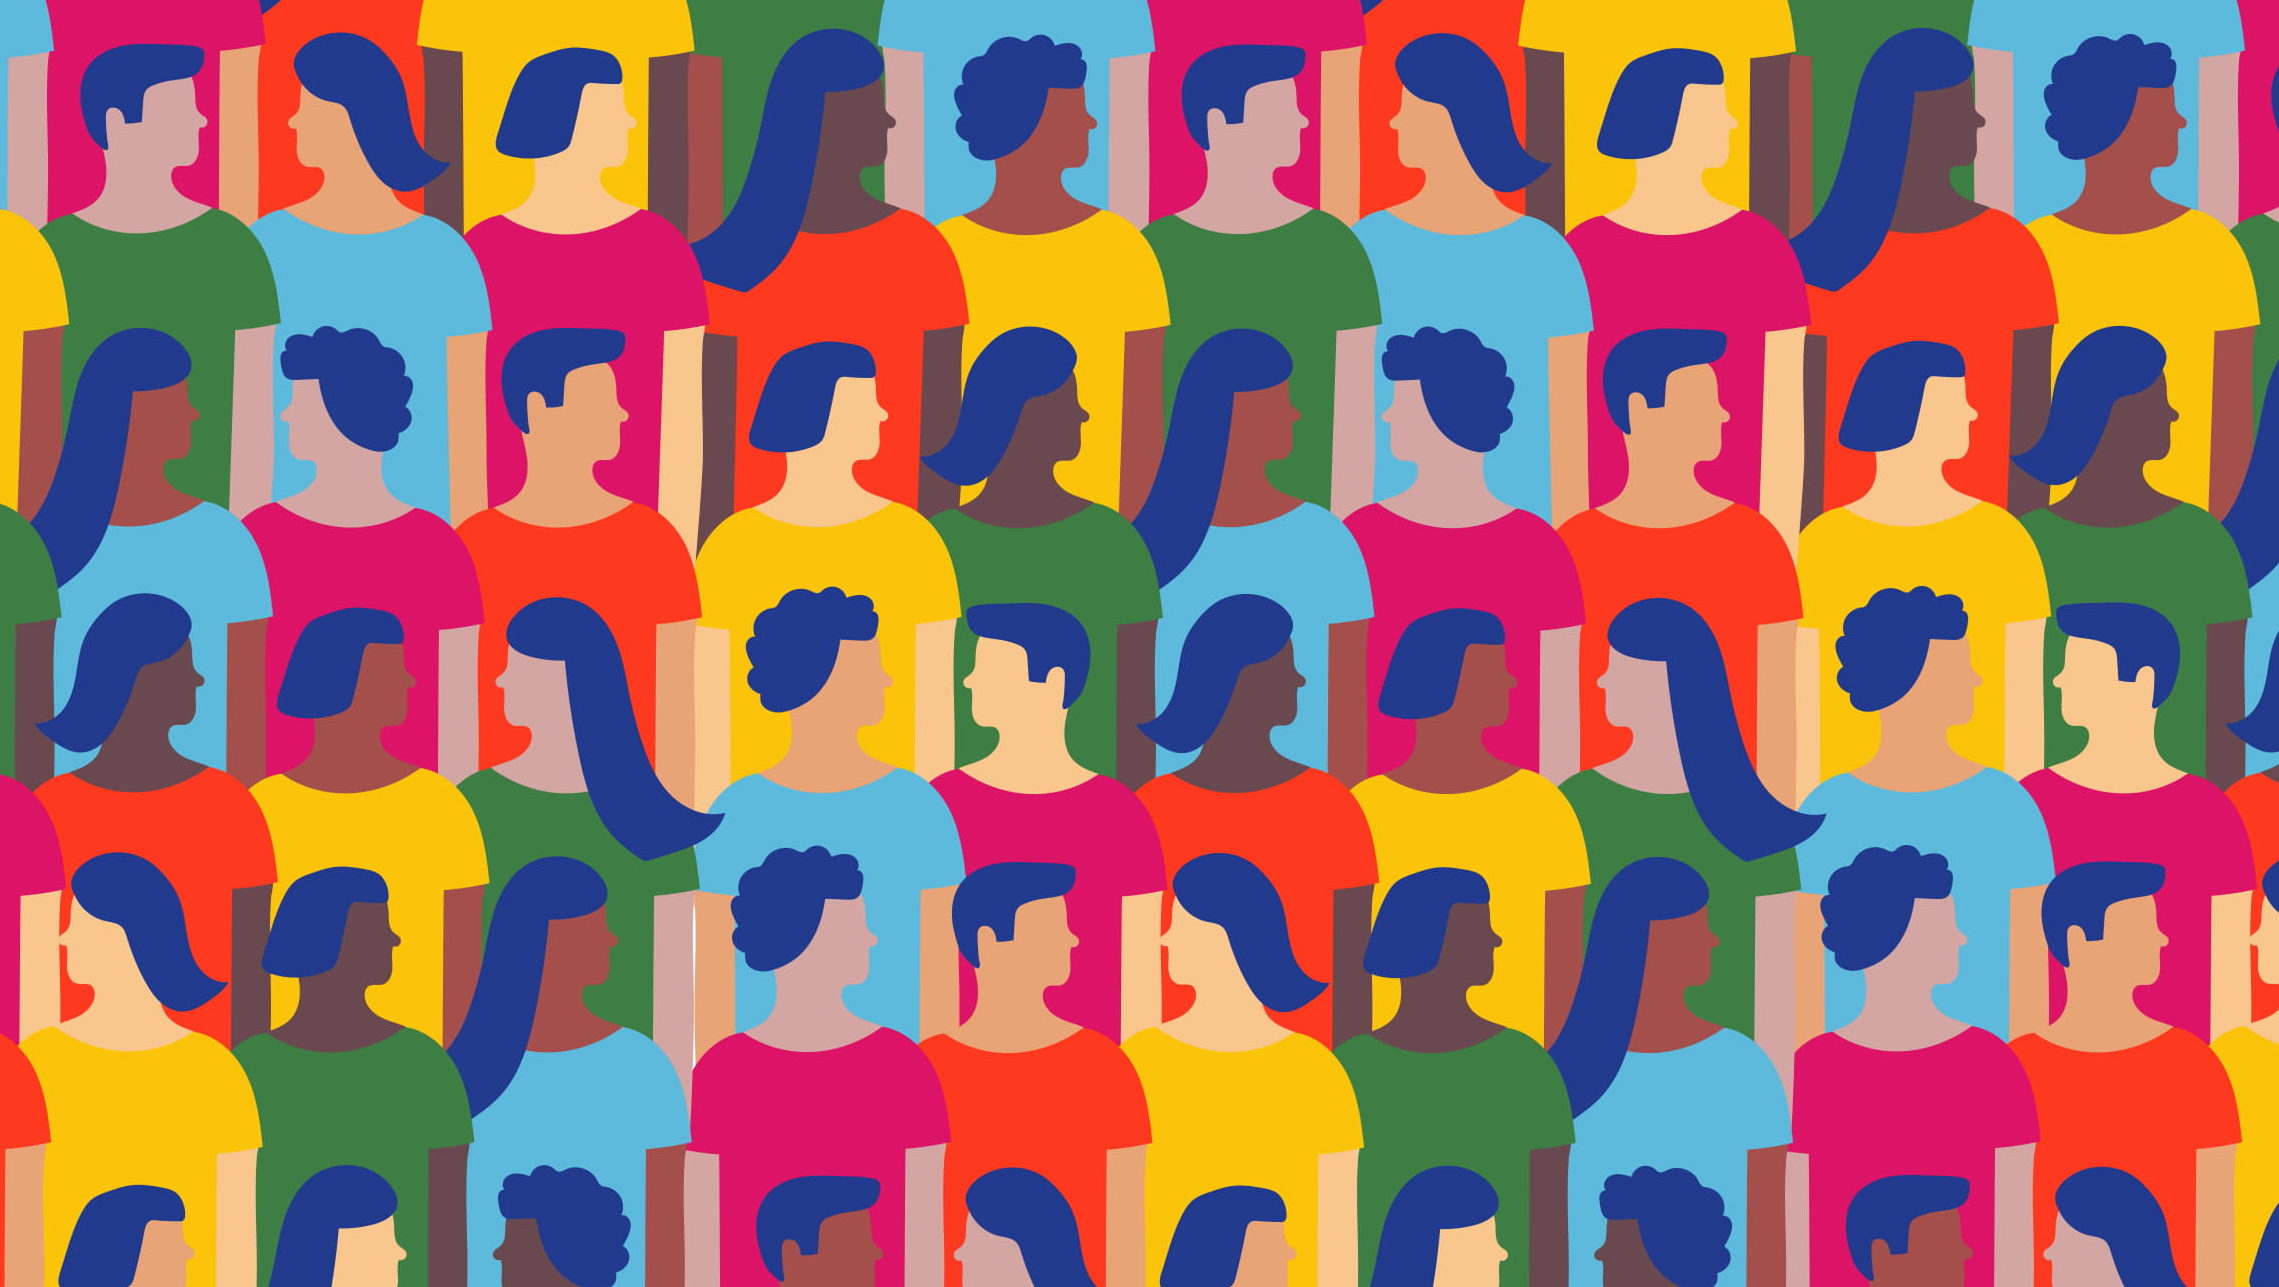 A graphic illustration of a diverse crowd of people.